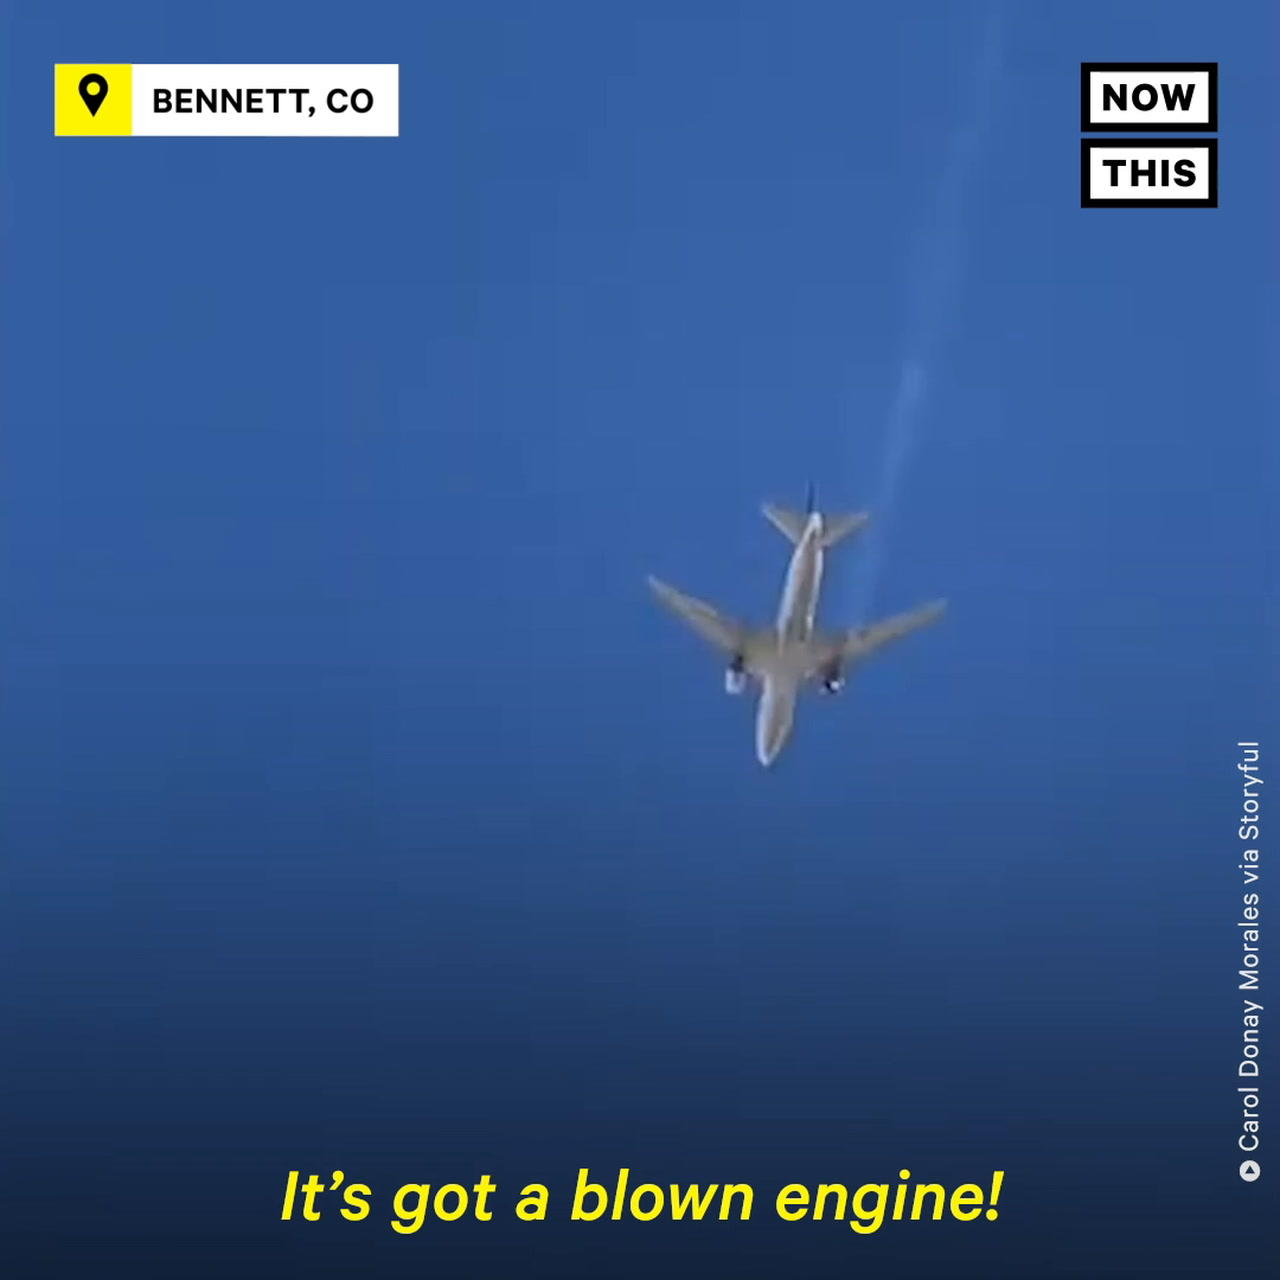 Boeing 777 Engine Fails on United Flight with 200+ Passengers On Board